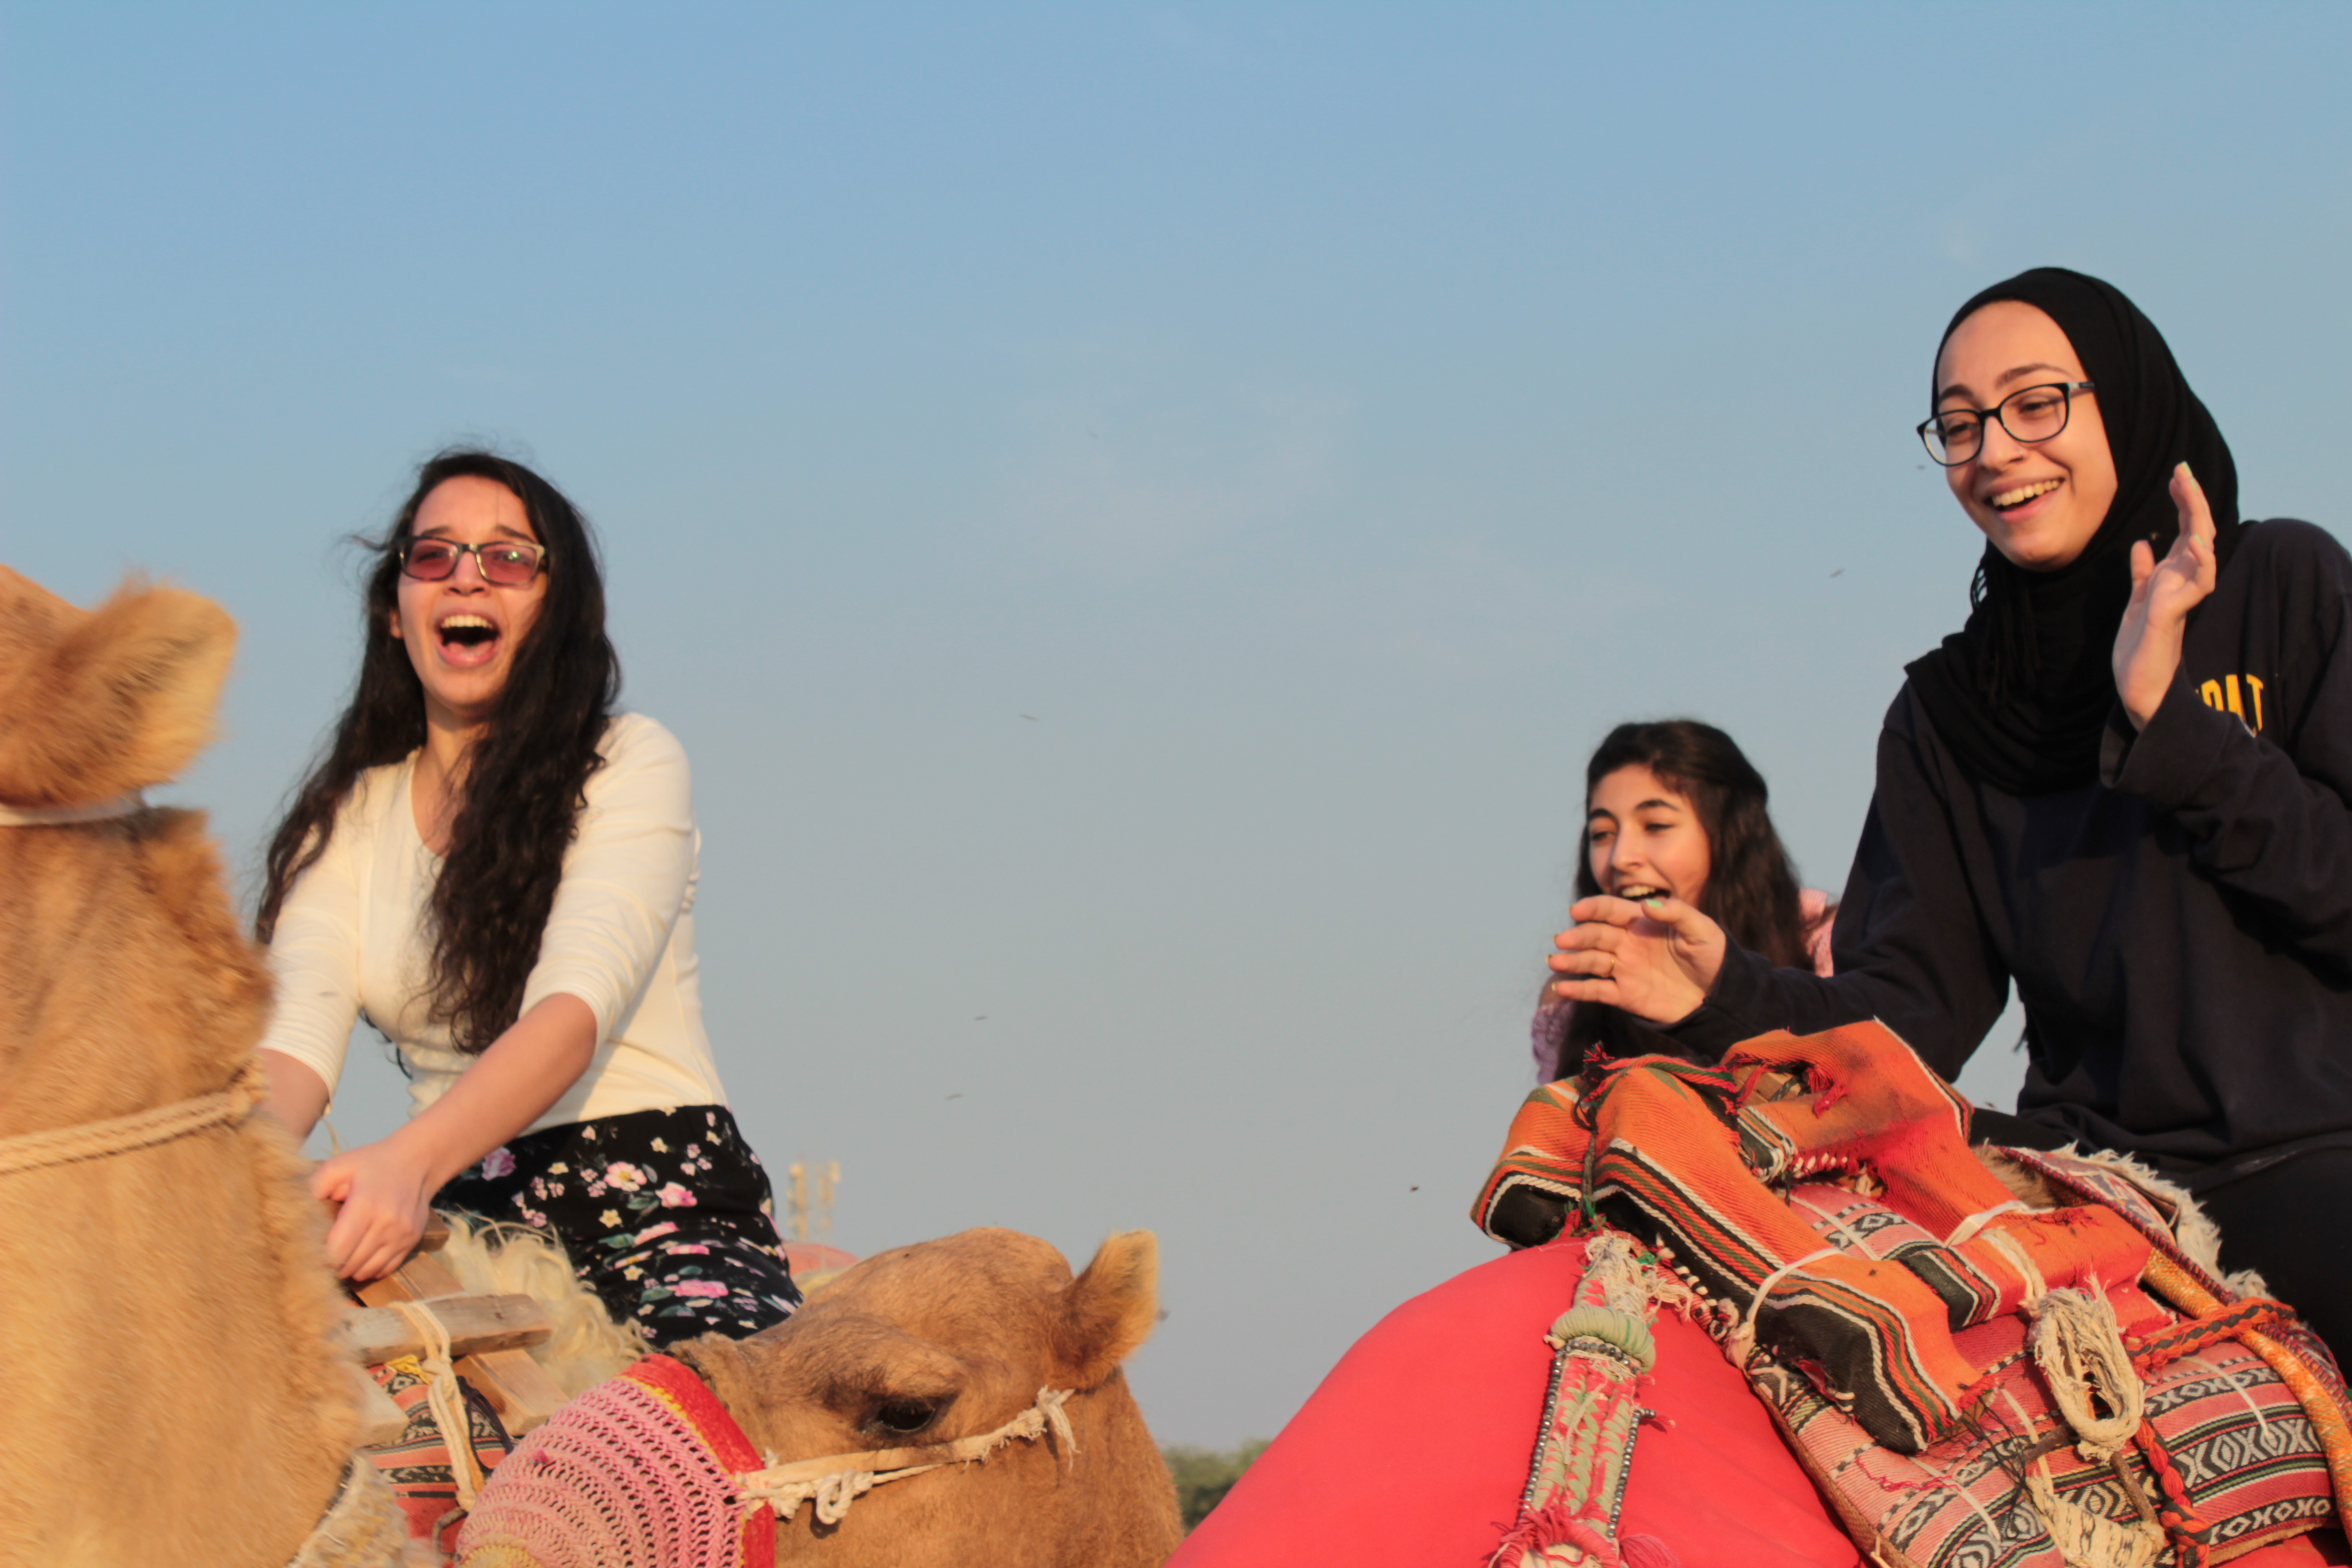 students smiling on top of camels